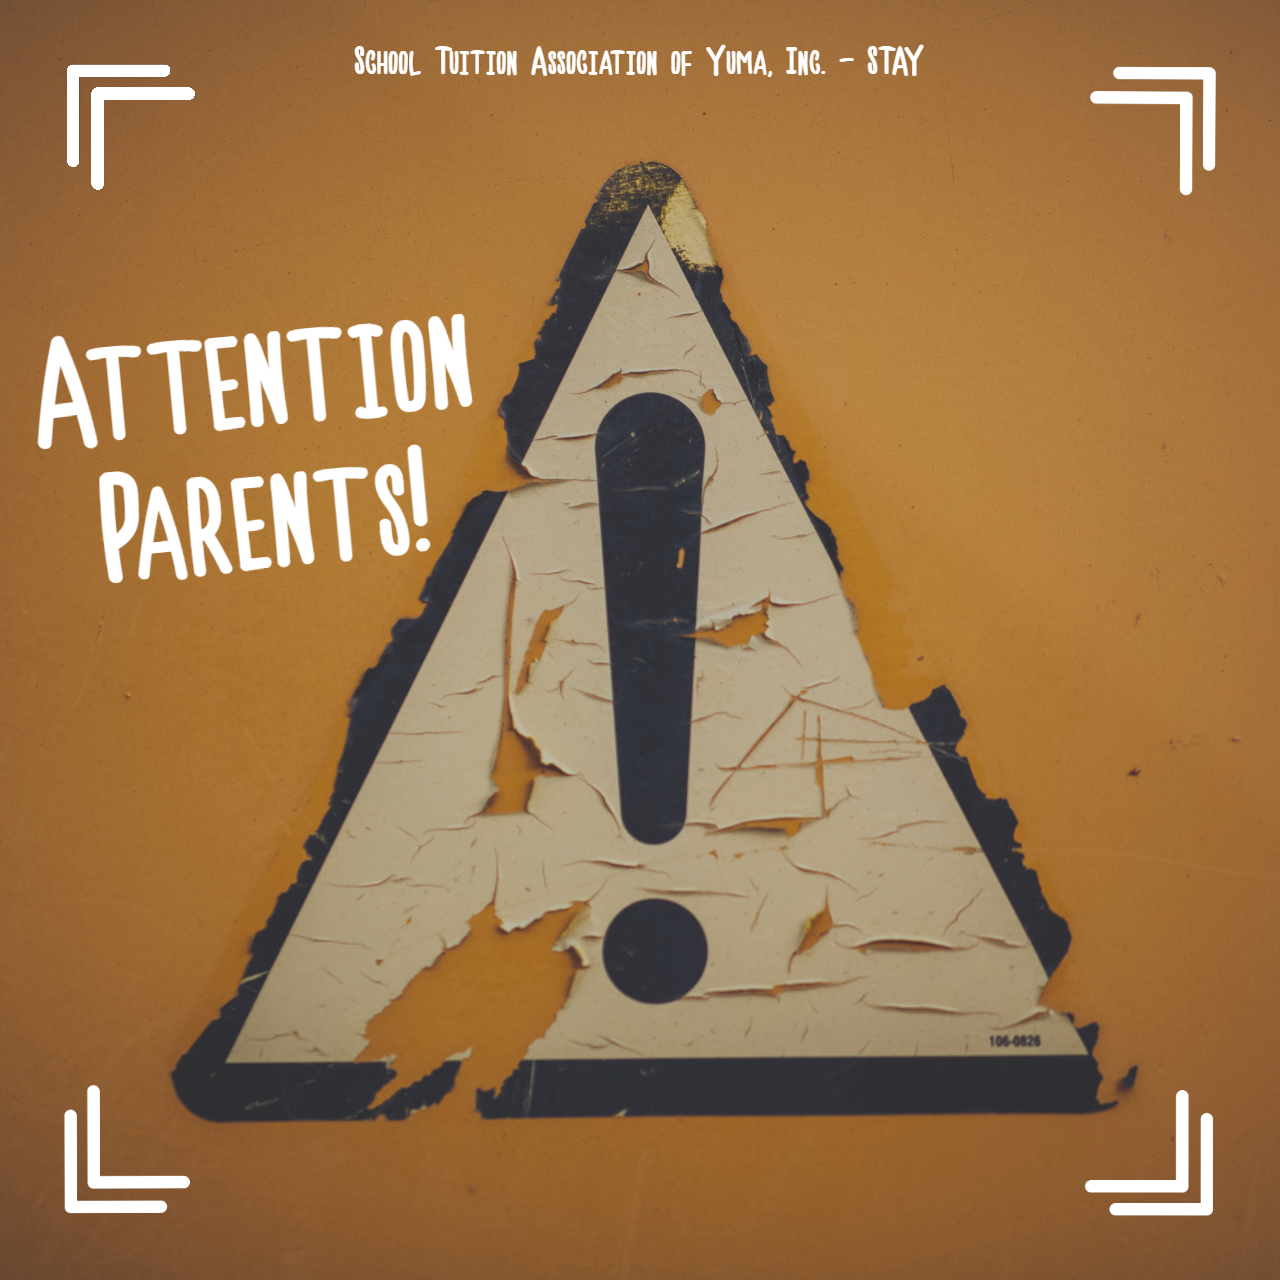 attentionparents.png